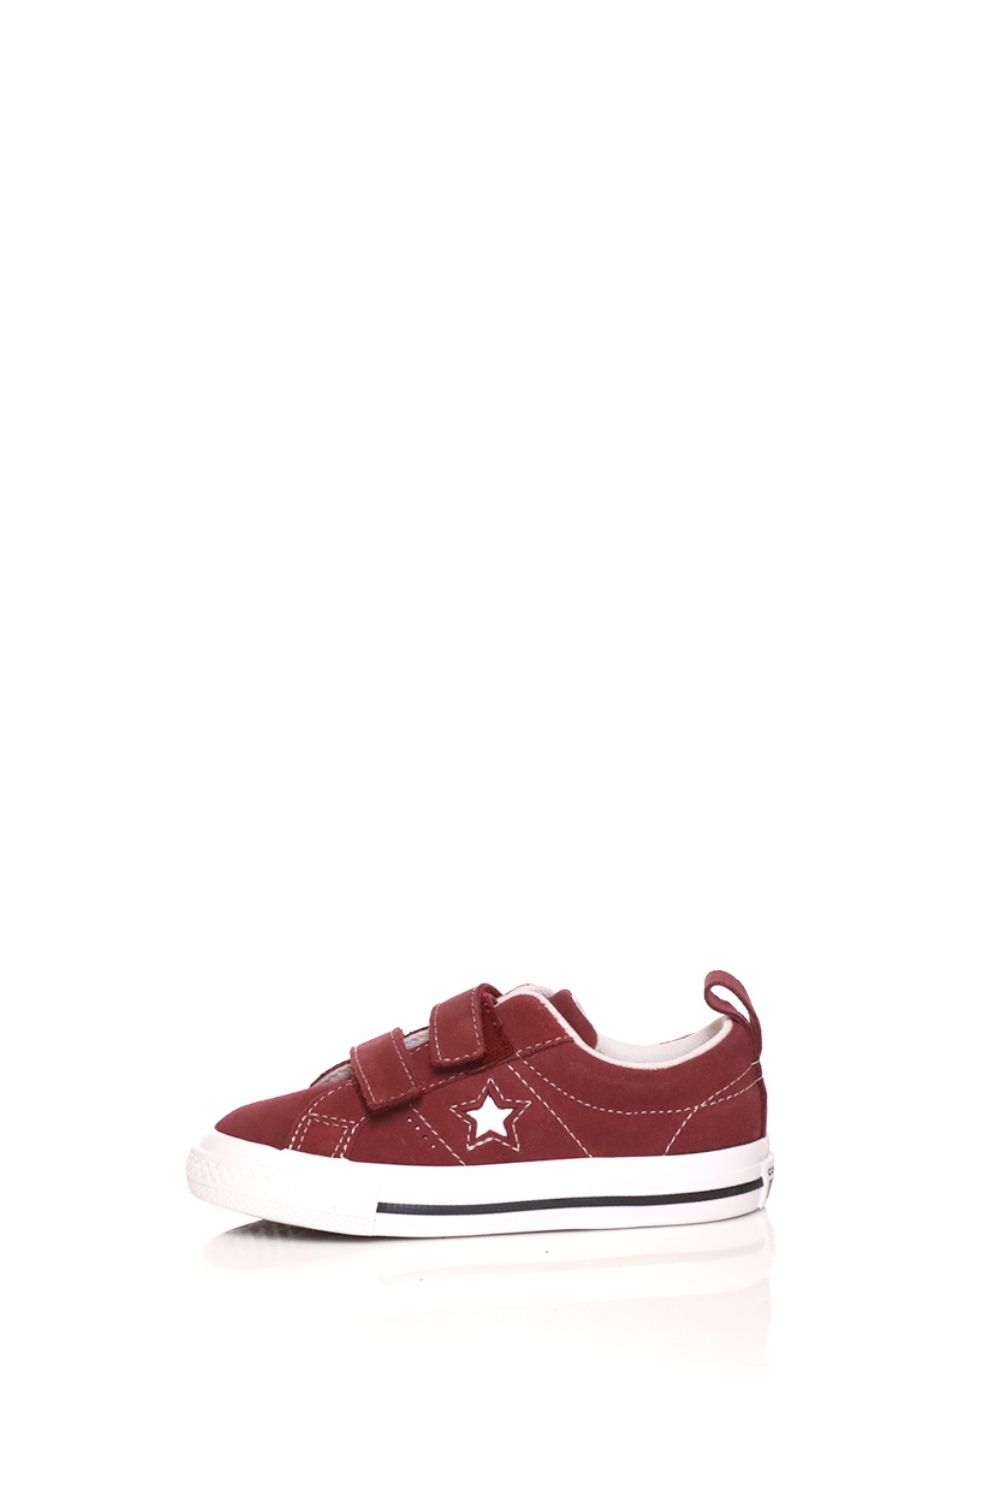 CONVERSE - Βρεφικά Sneakers CONVERSE ONE STAR 2V Μπορντό